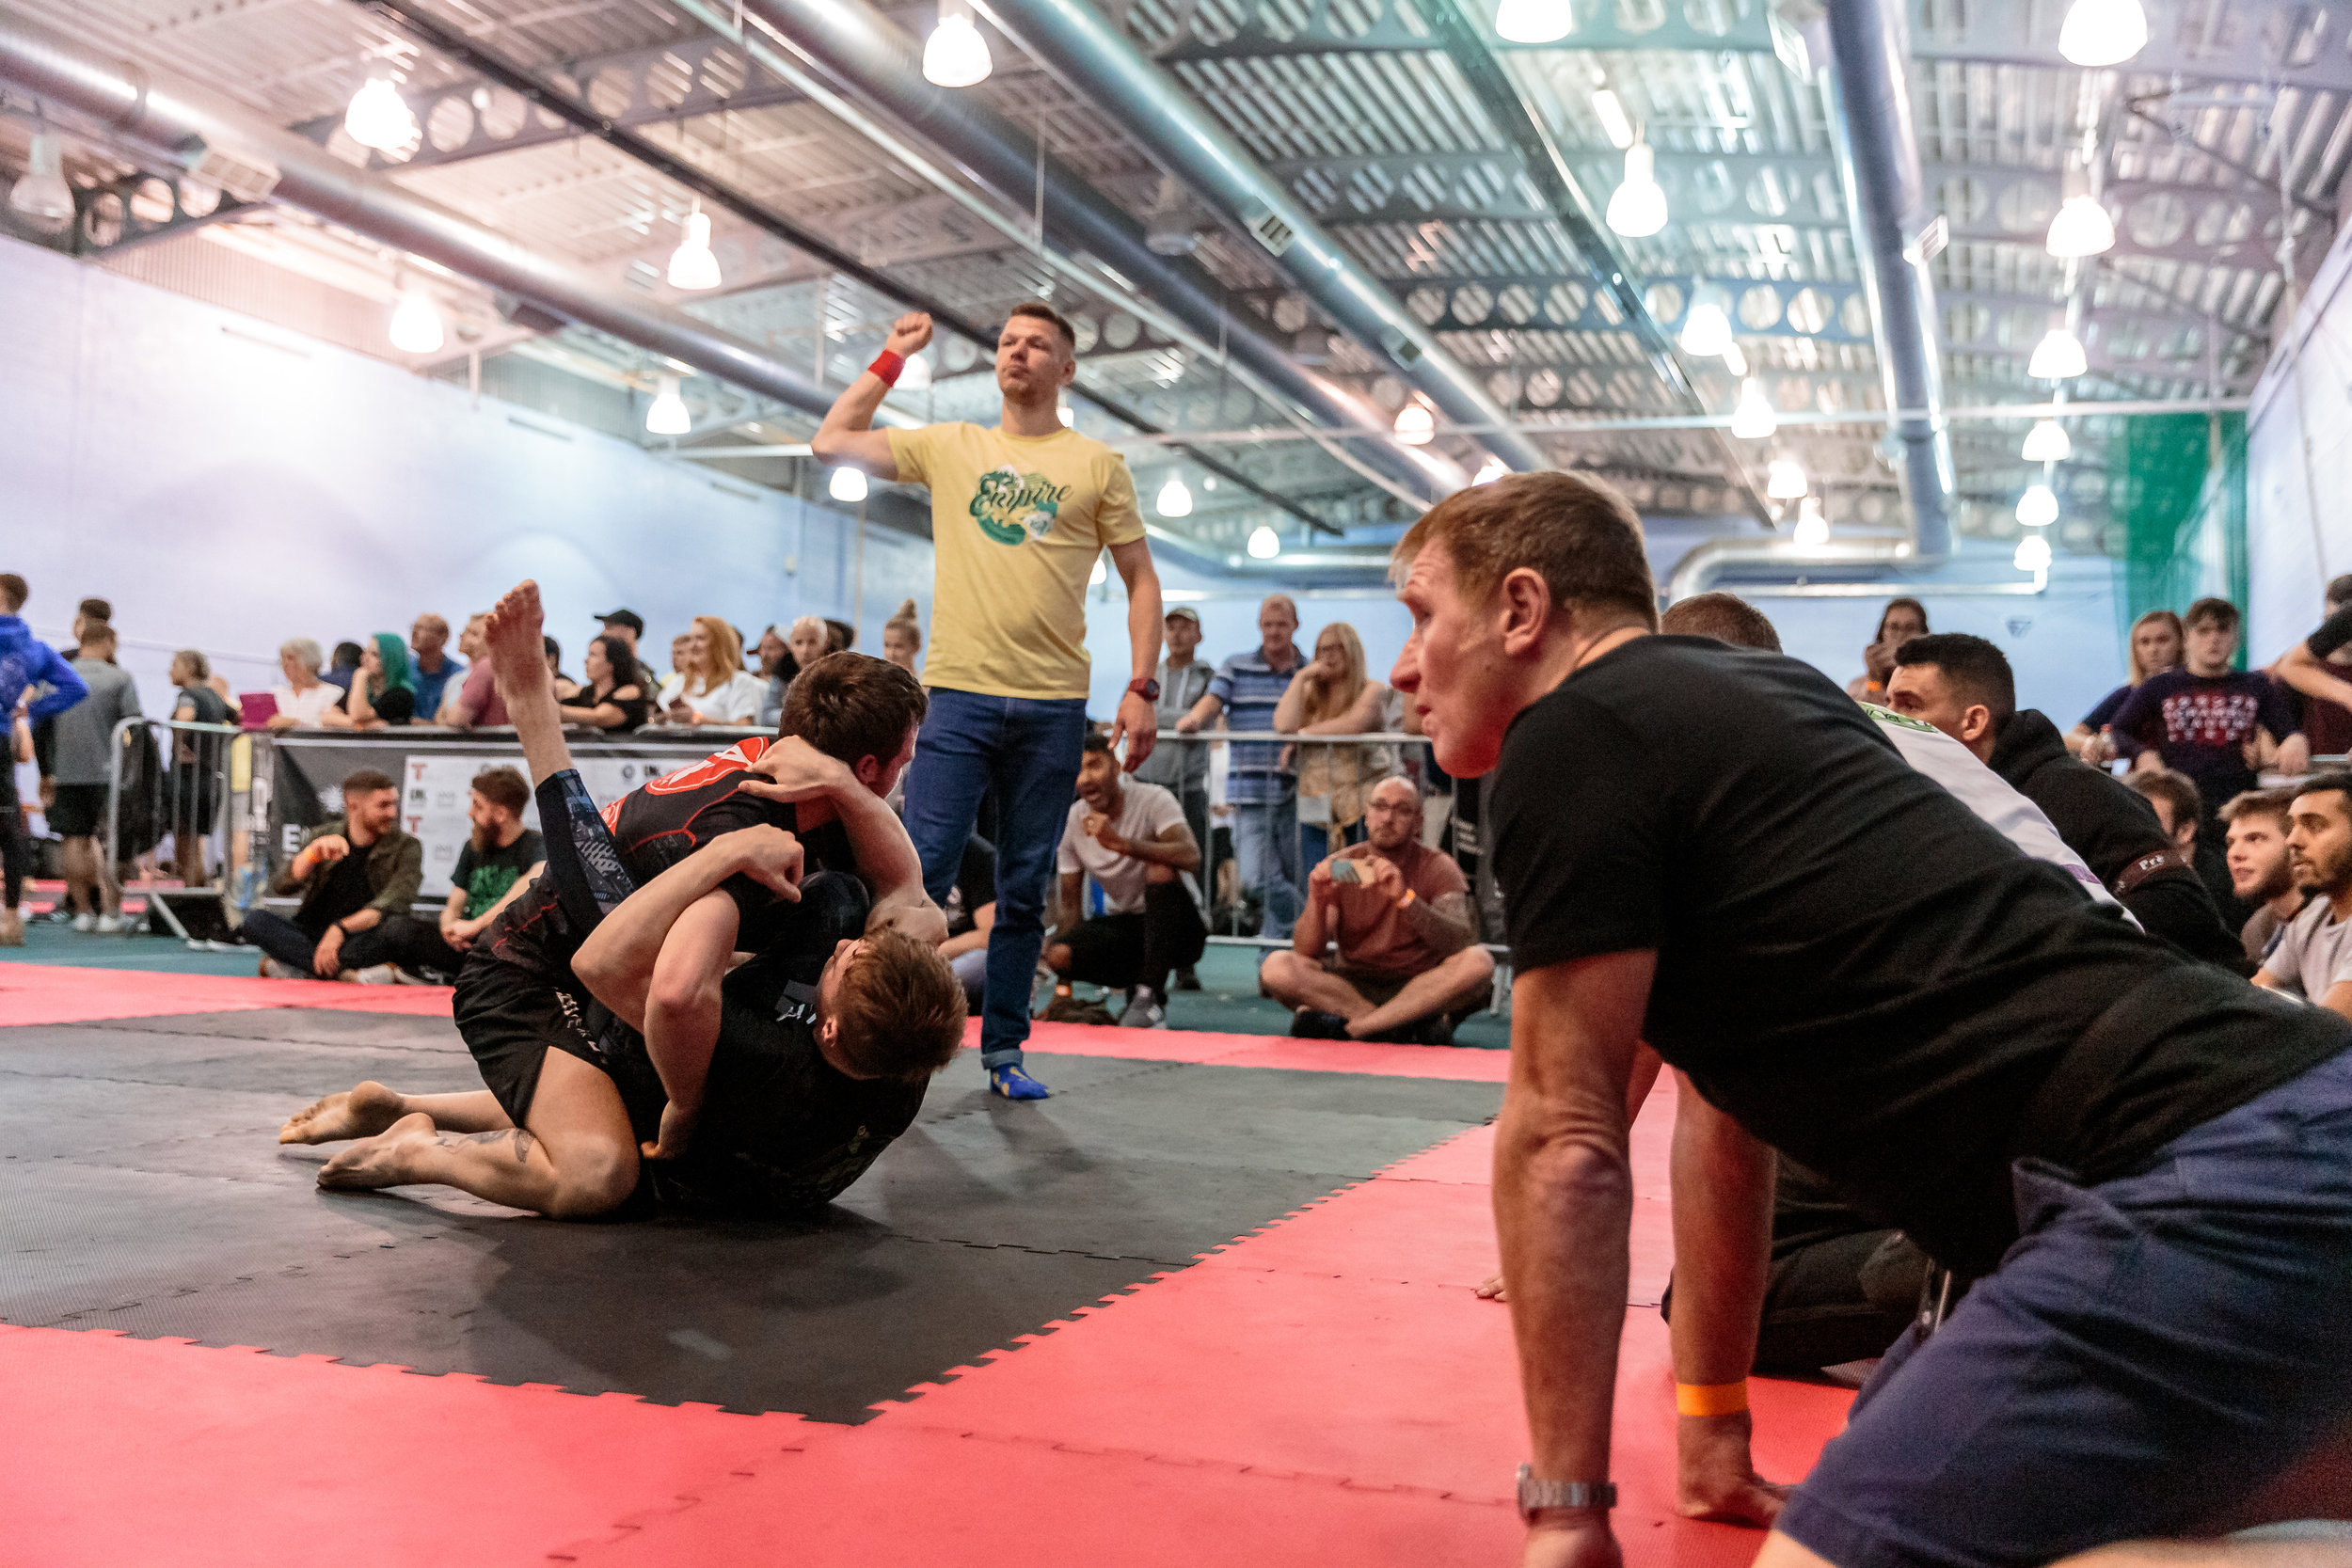 Move of the Day: Last Minute Sweep From Hayden Baldwin to take the match at Empire Grappling